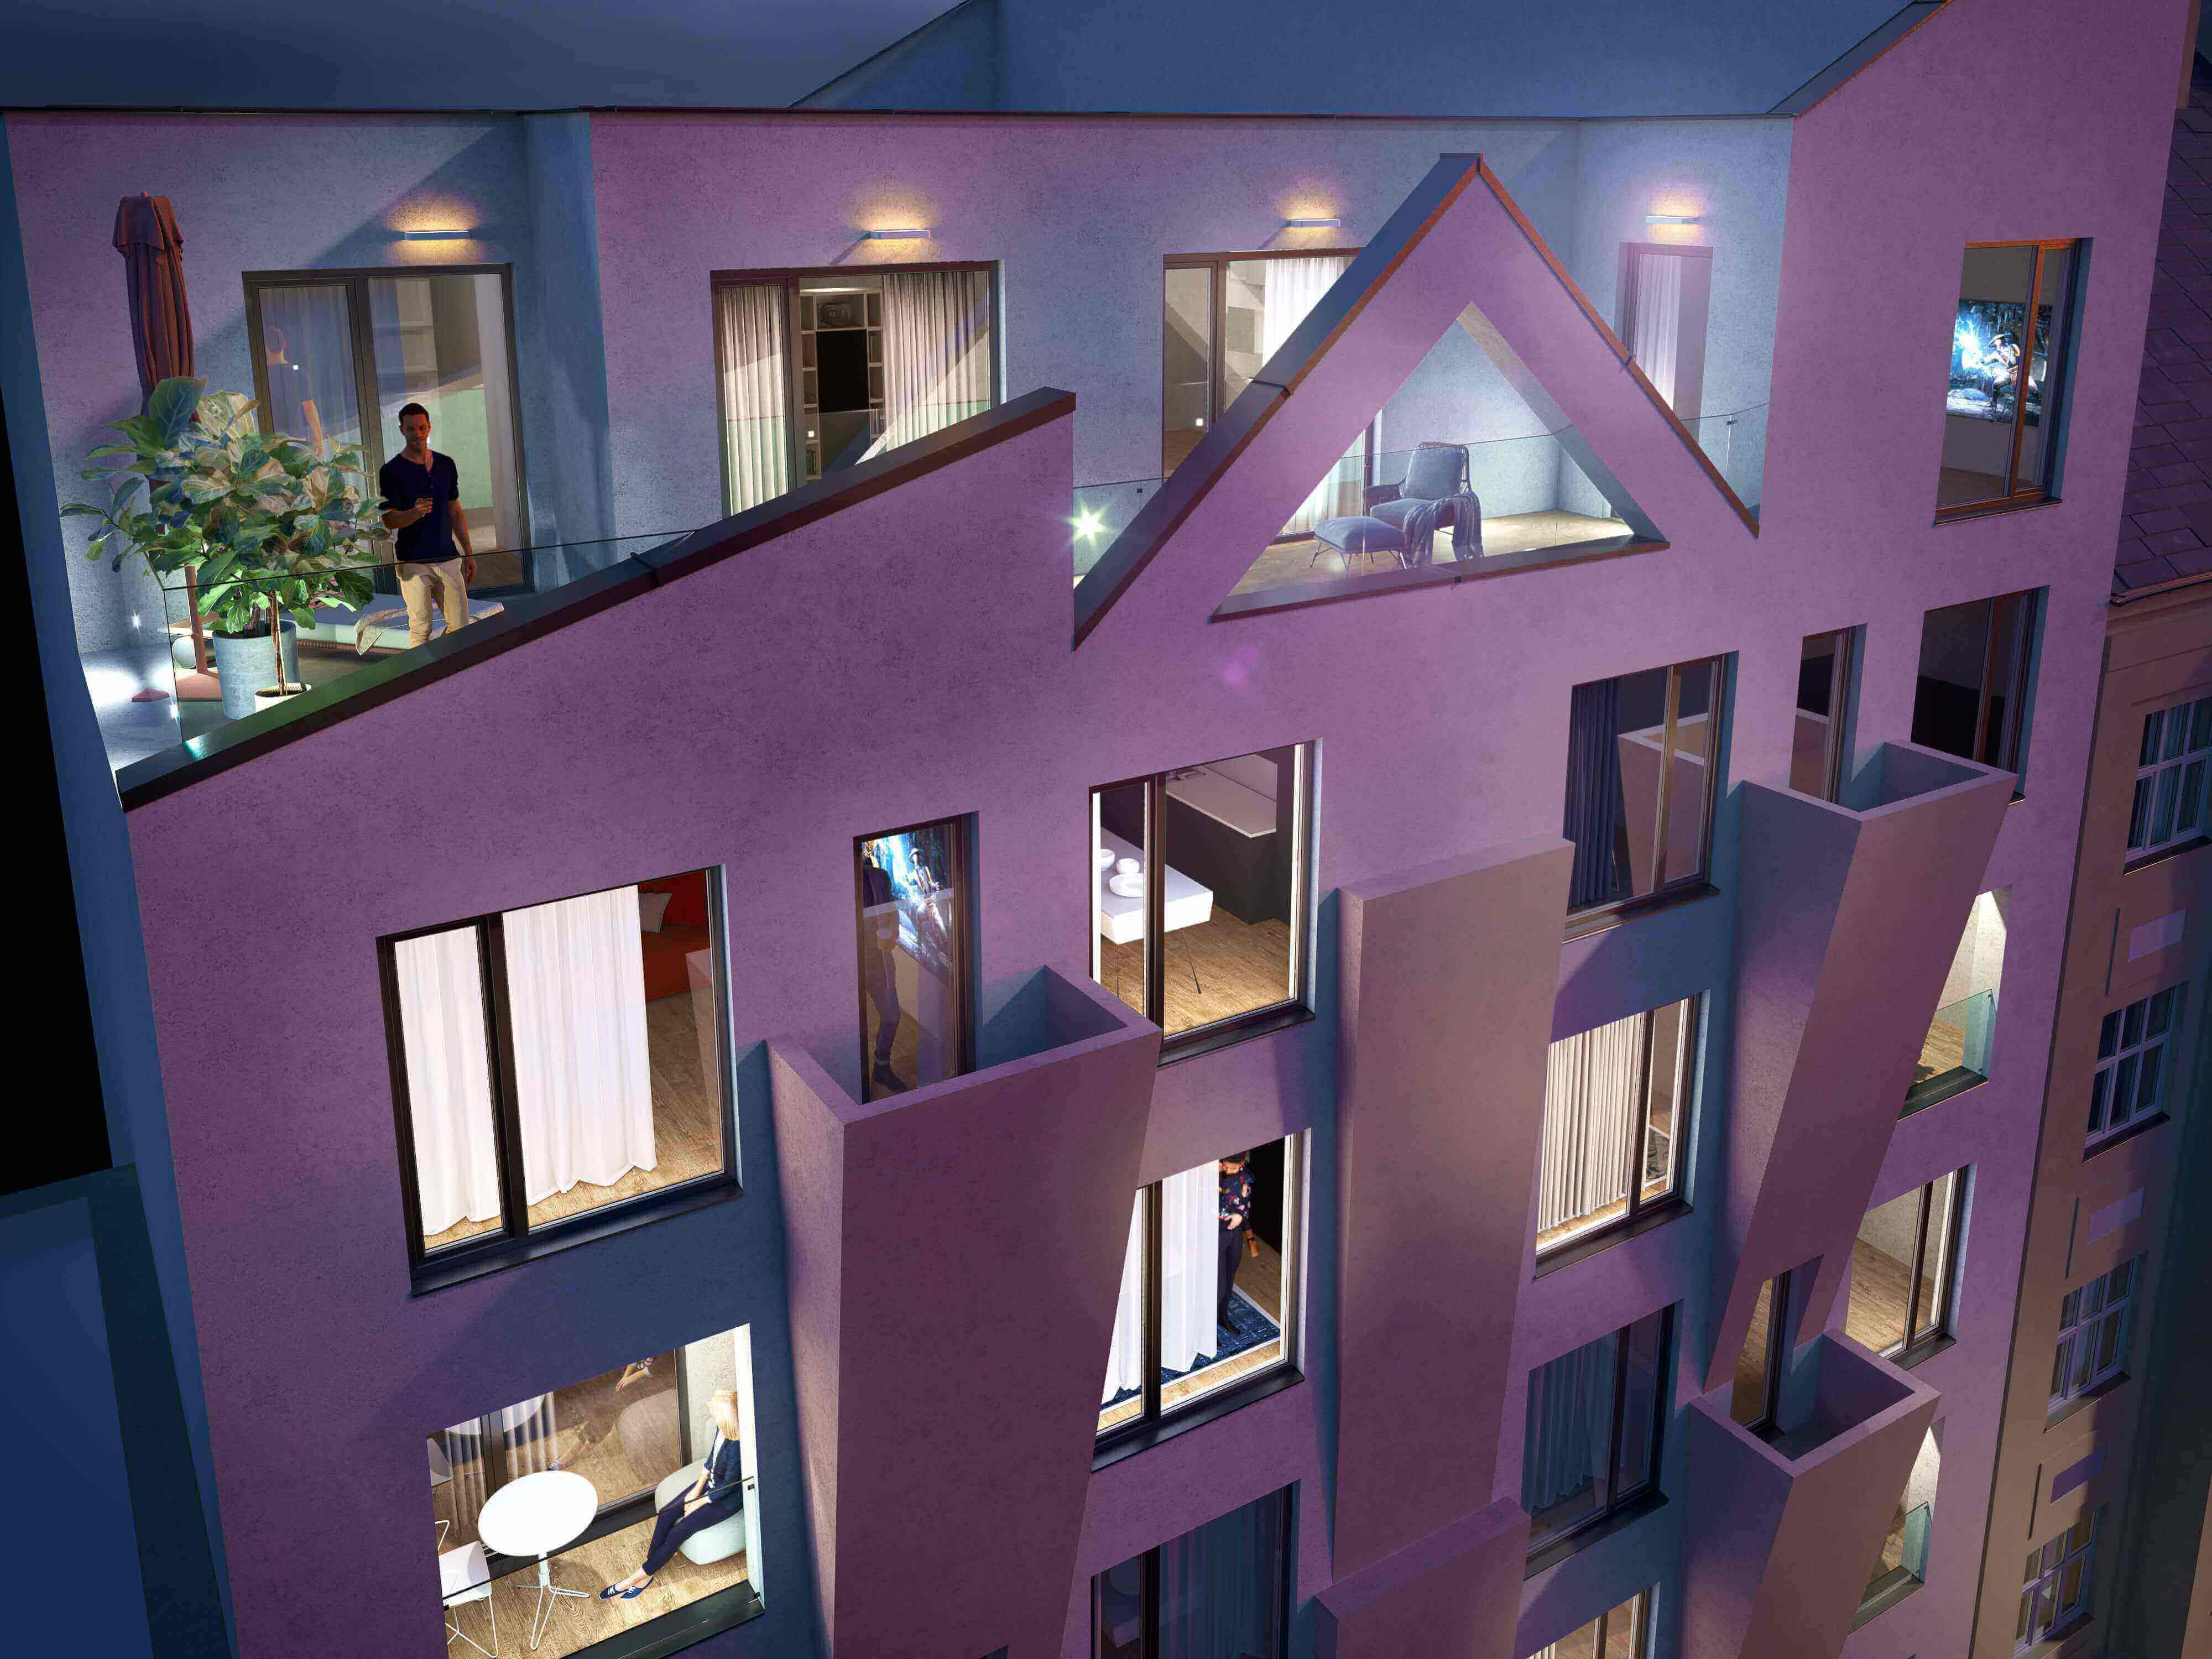 Apartments by the metro station. Residential project Harfa Yard near the Českomoravská metro station, the O2 arena and the Harfa Shopping Mall. Developer GARTAL